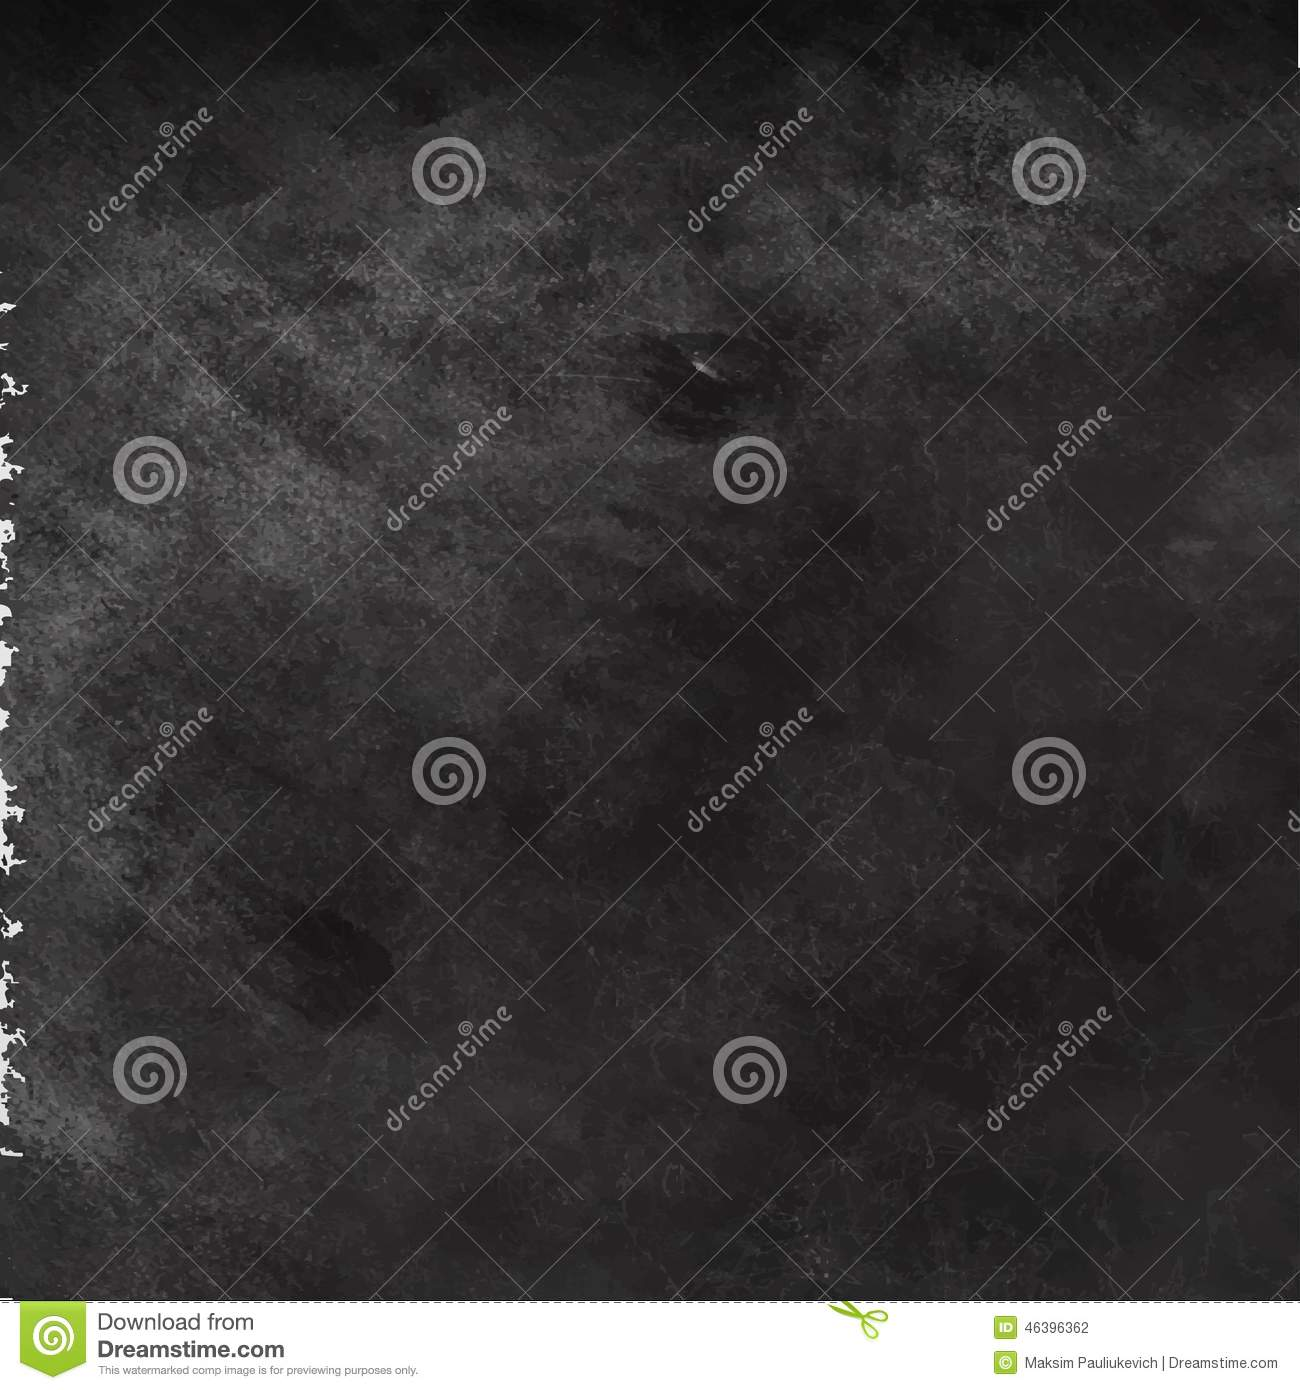 11 Black Grunge Texture Vector Images - Black and White ...